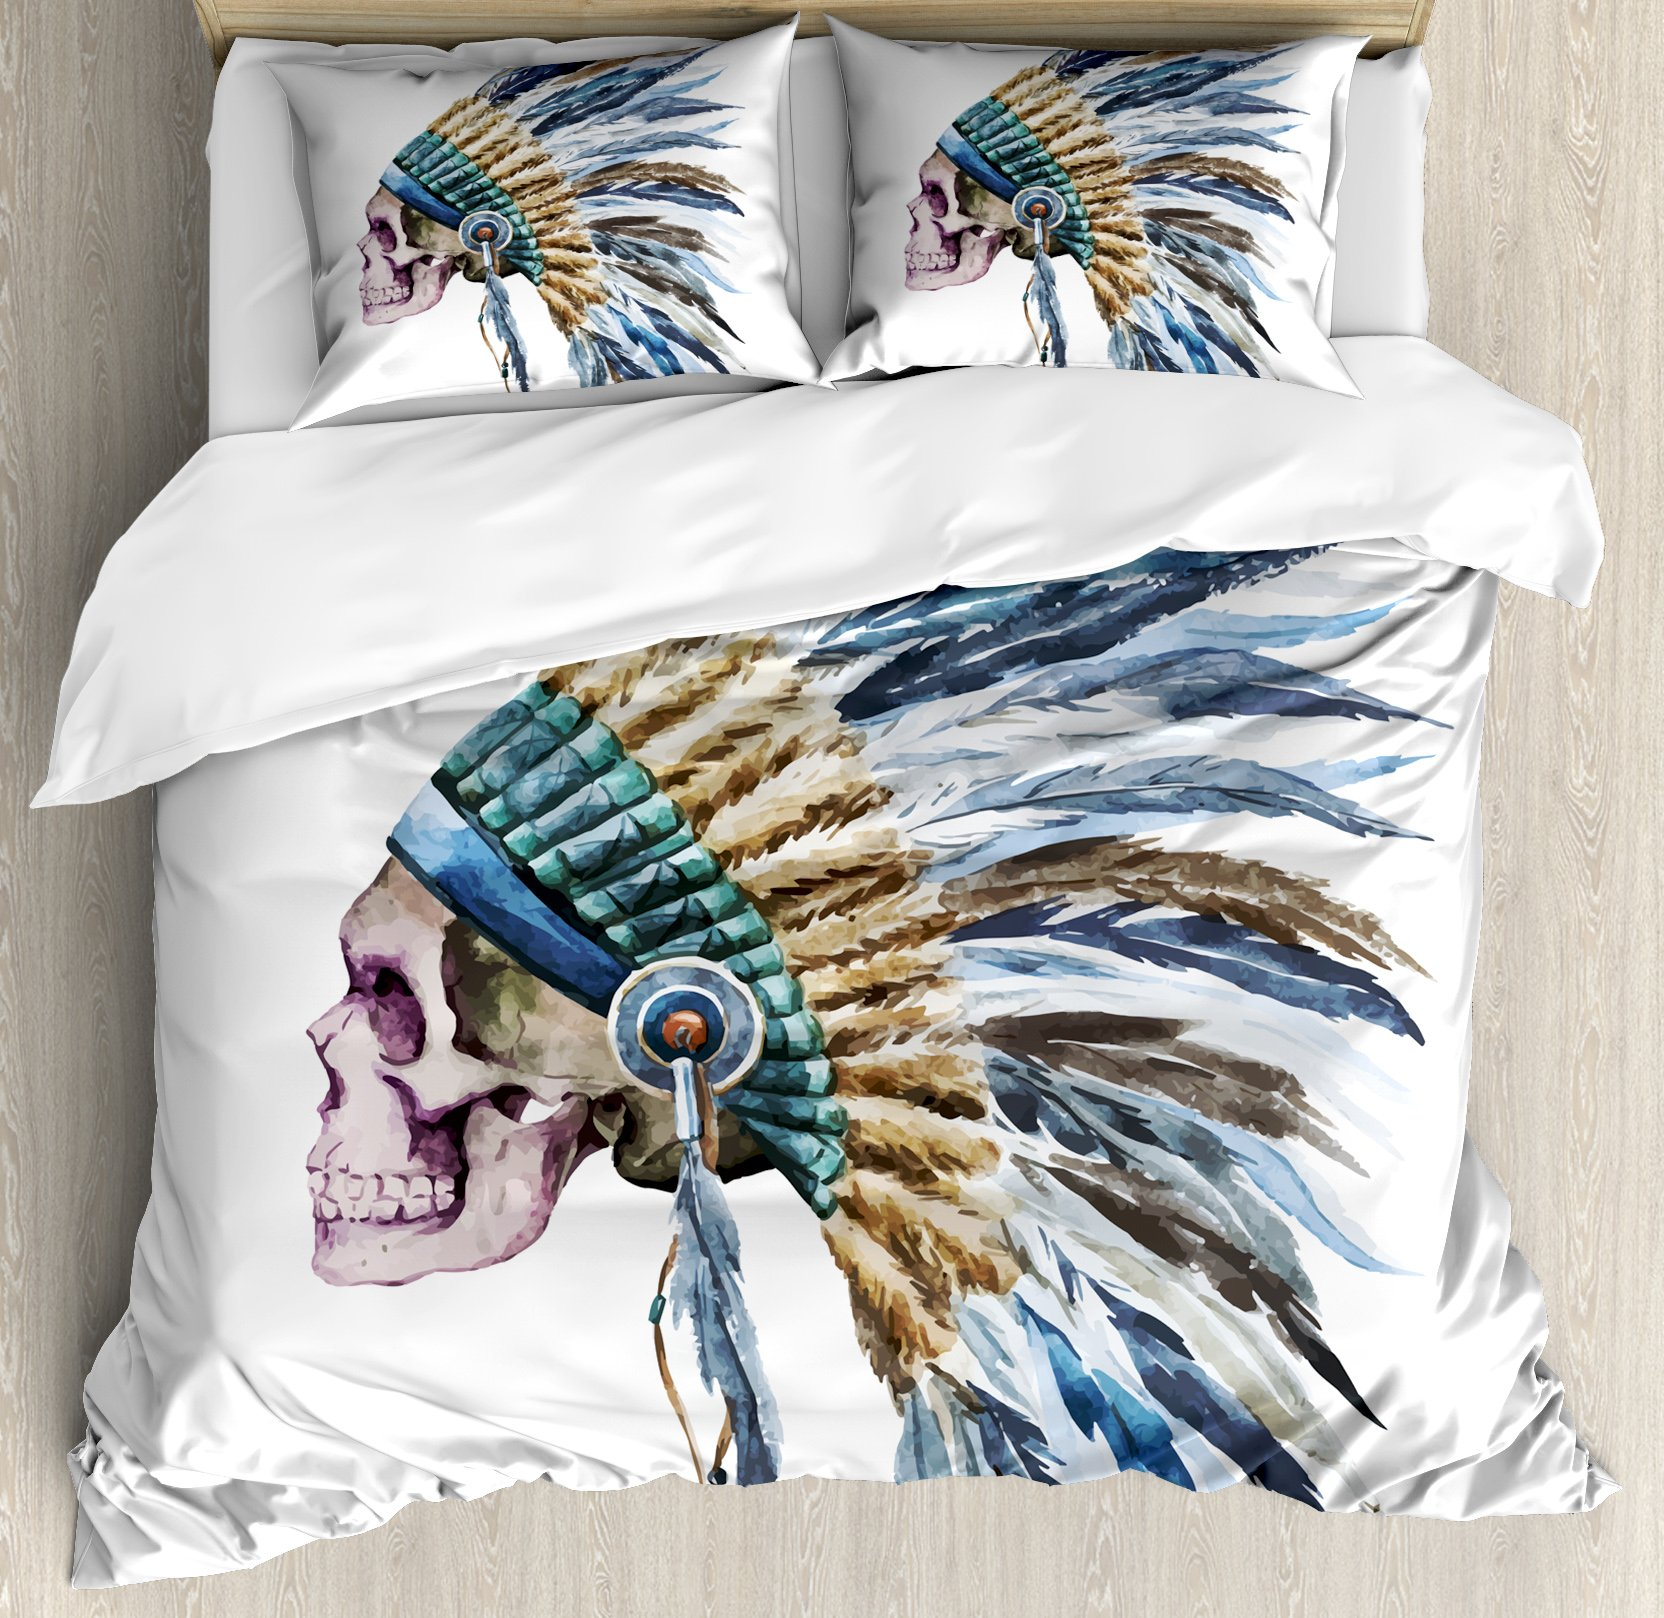 Watercolor King Size Duvet Cover Set by Lunarable, Cool Skull with Native American War Hat Indigenous Cultures Circle of Life Death, Decorative 3 Piece Bedding Set with 2 Pillow Shams, Multicolor